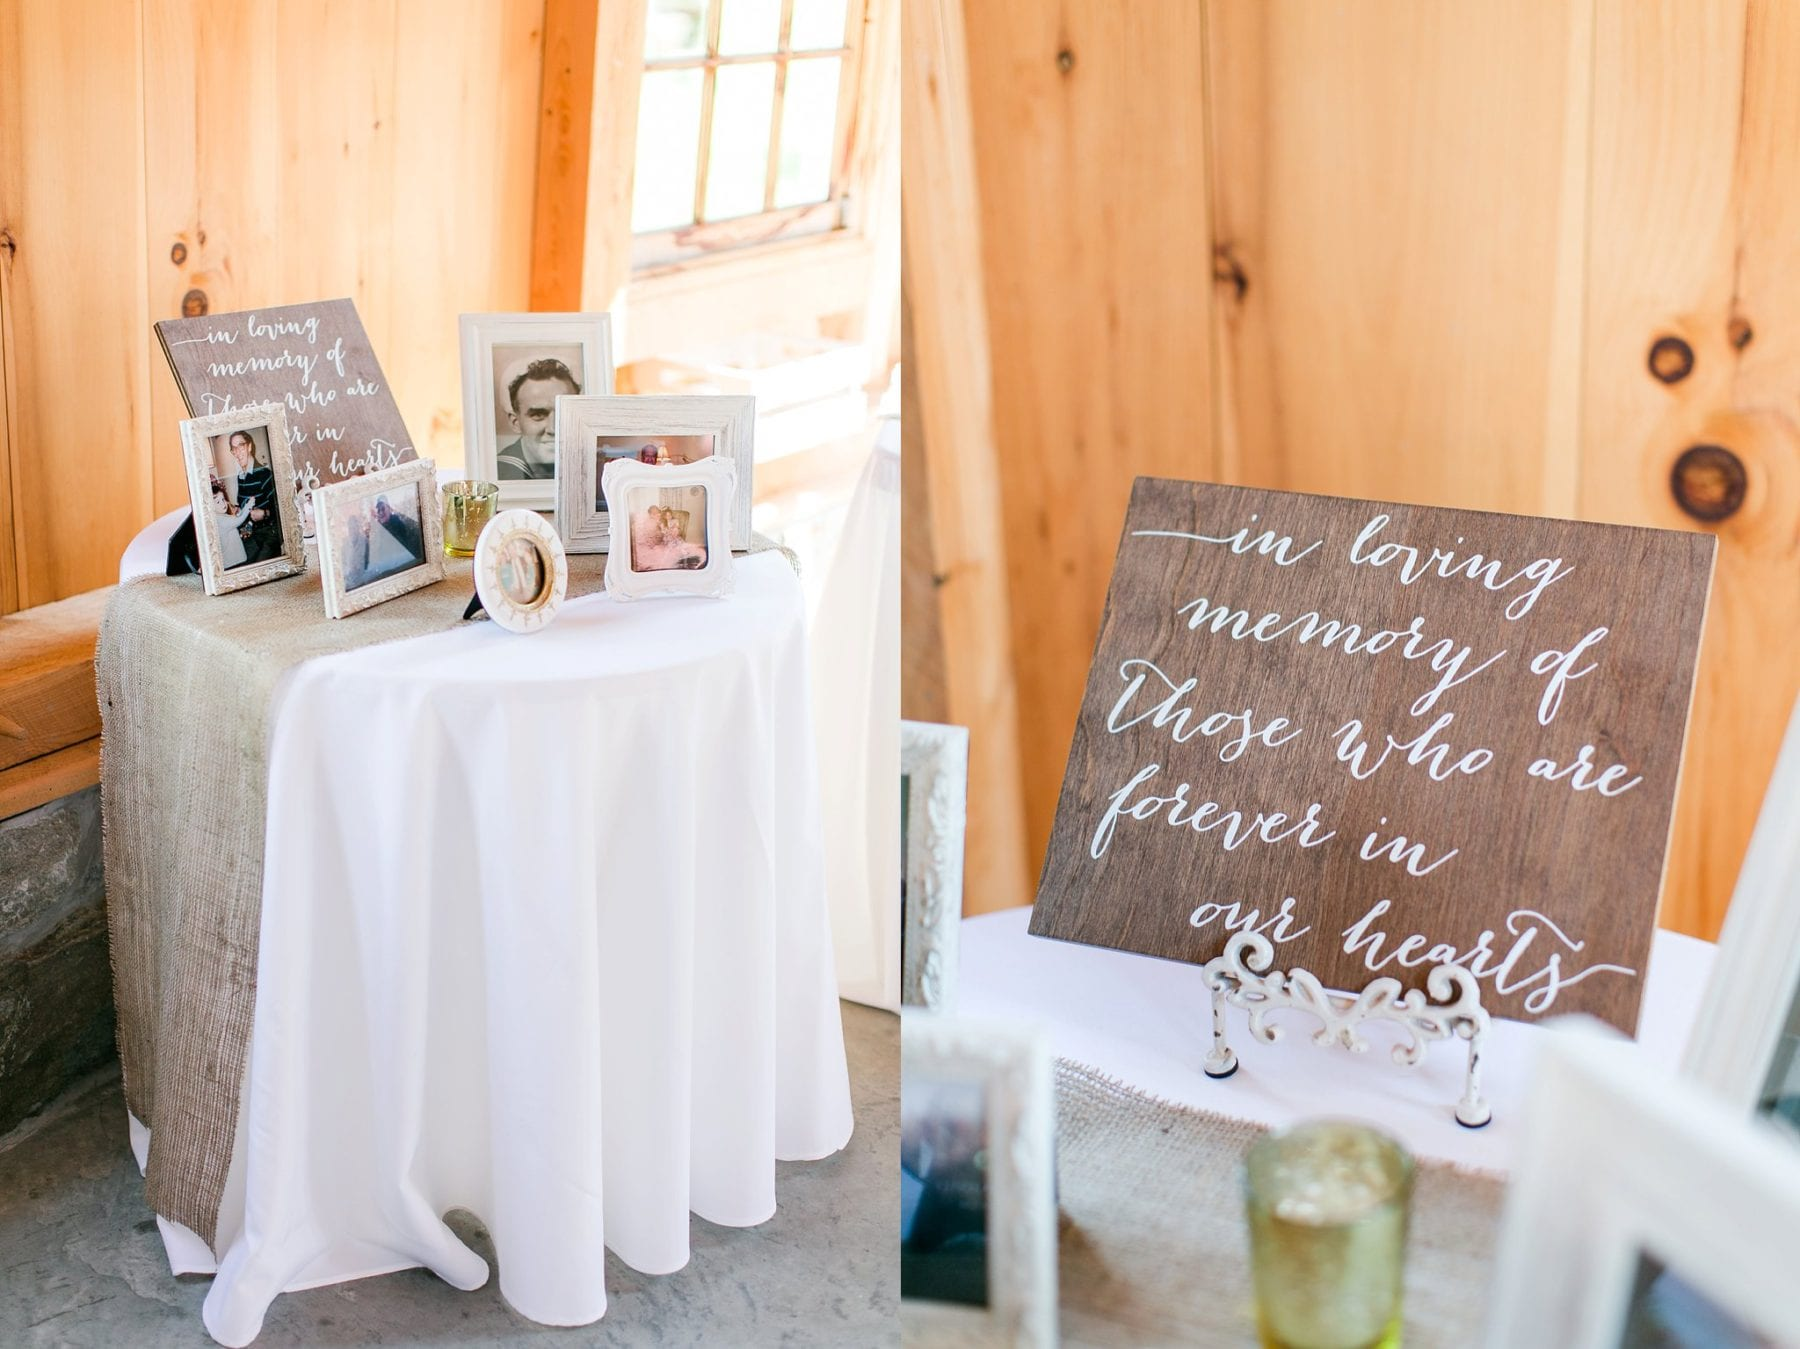 Pond View Farm Wedding Photos Maryland Wedding Photographer Kristen & Ryan Megan Kelsey Photography Blog-197.jpg